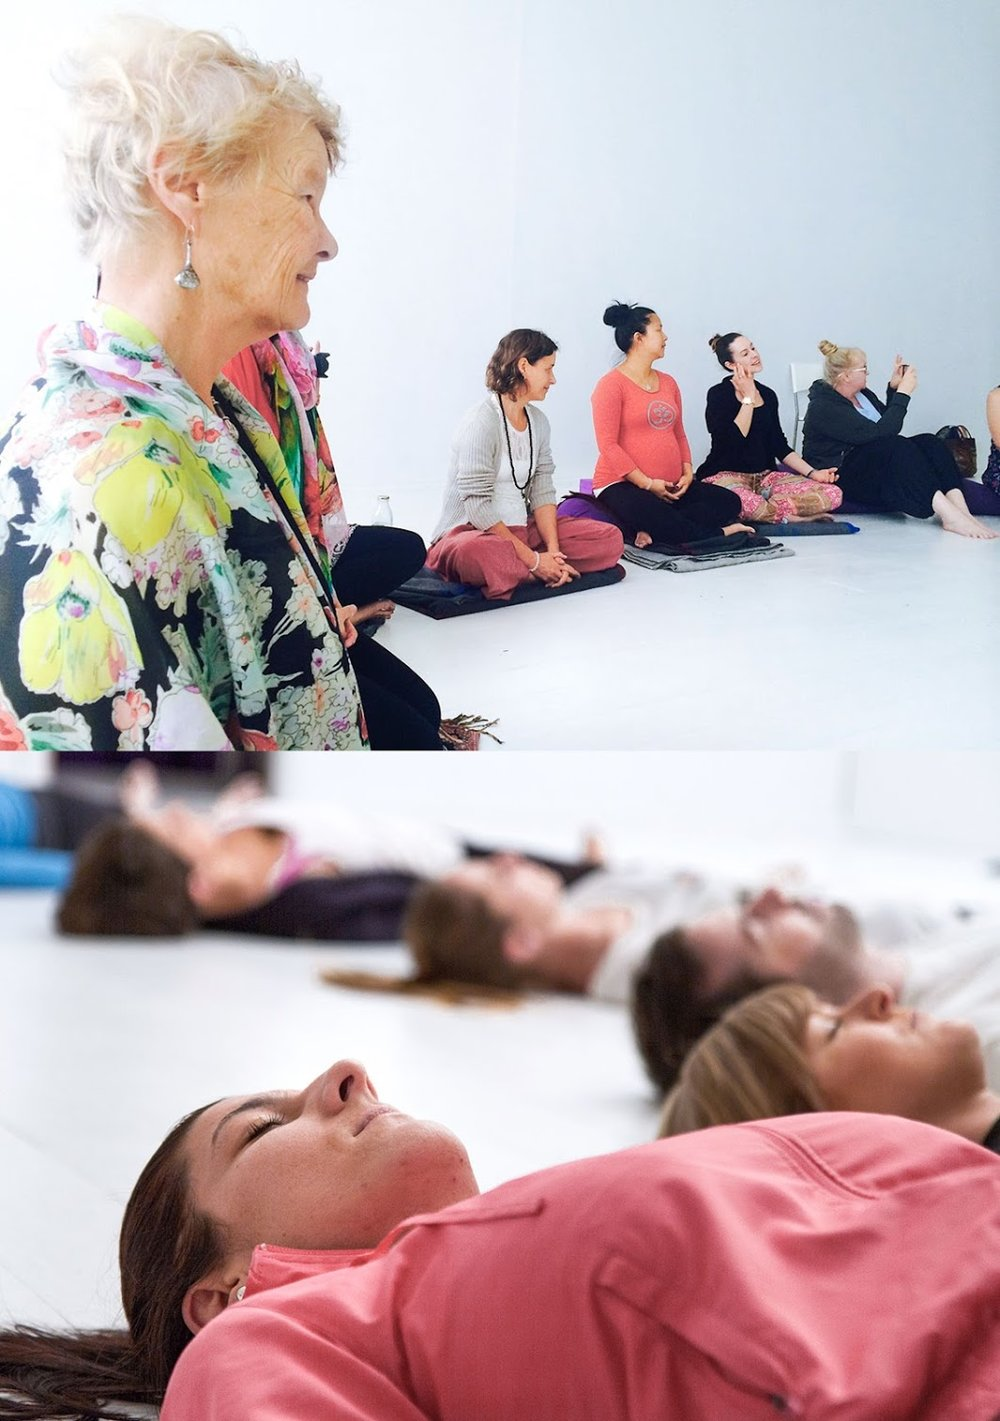 Yoga Nidra Teacher Training 2019 - Yoga Nidra is a highly powerful ancient sleep-based meditation technique originated from the ancient yogic scriptures. Yoga Nidra uses the biological process of sleep to enter an evolutionary state of consciousness where one can awaken to their true nature.